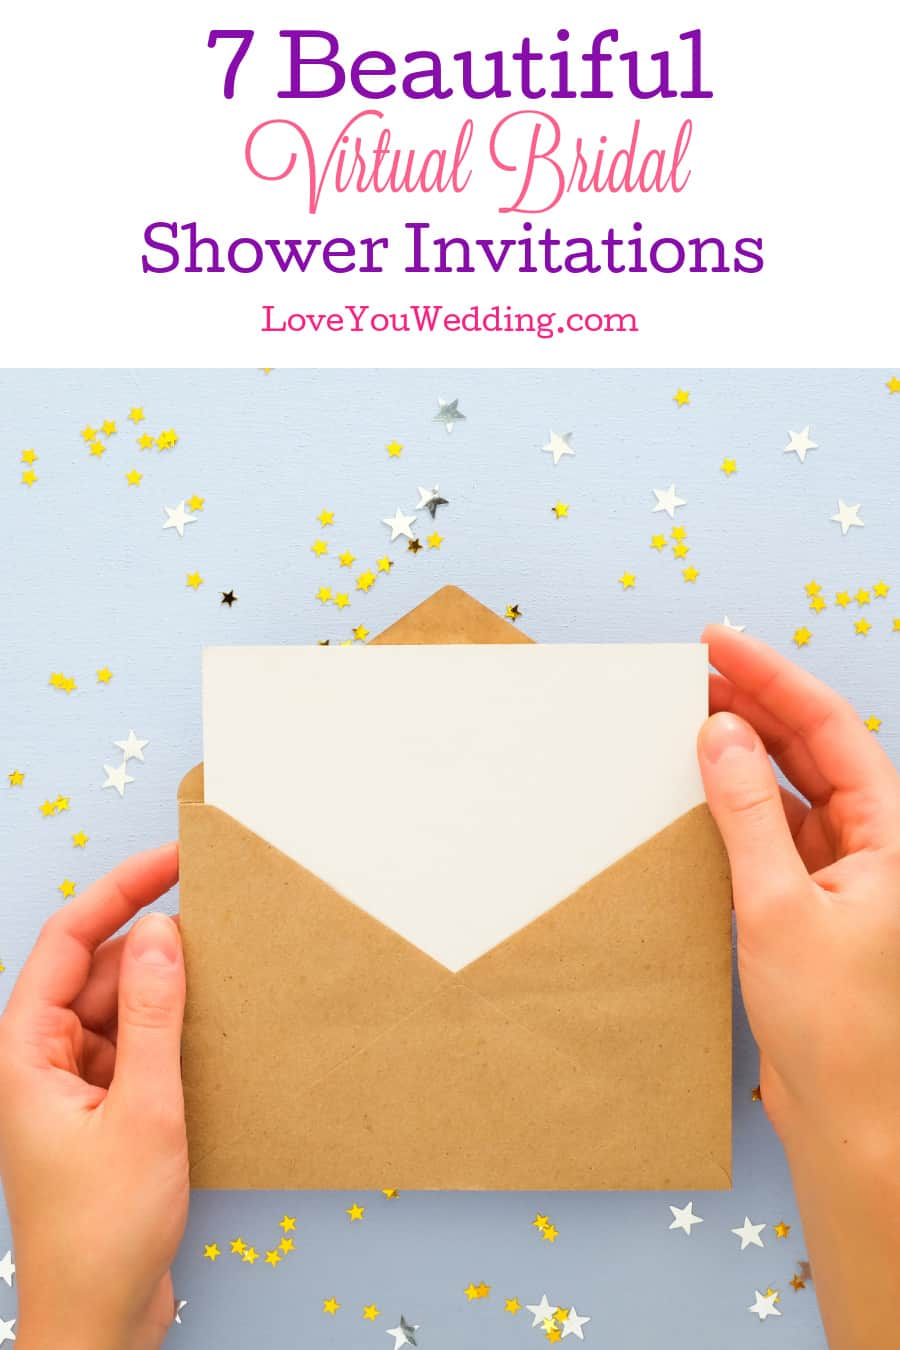 Throwing your pre-wedding party completely online? Then you'll need one of these nifty virtual bridal shower invitations. Check them out!